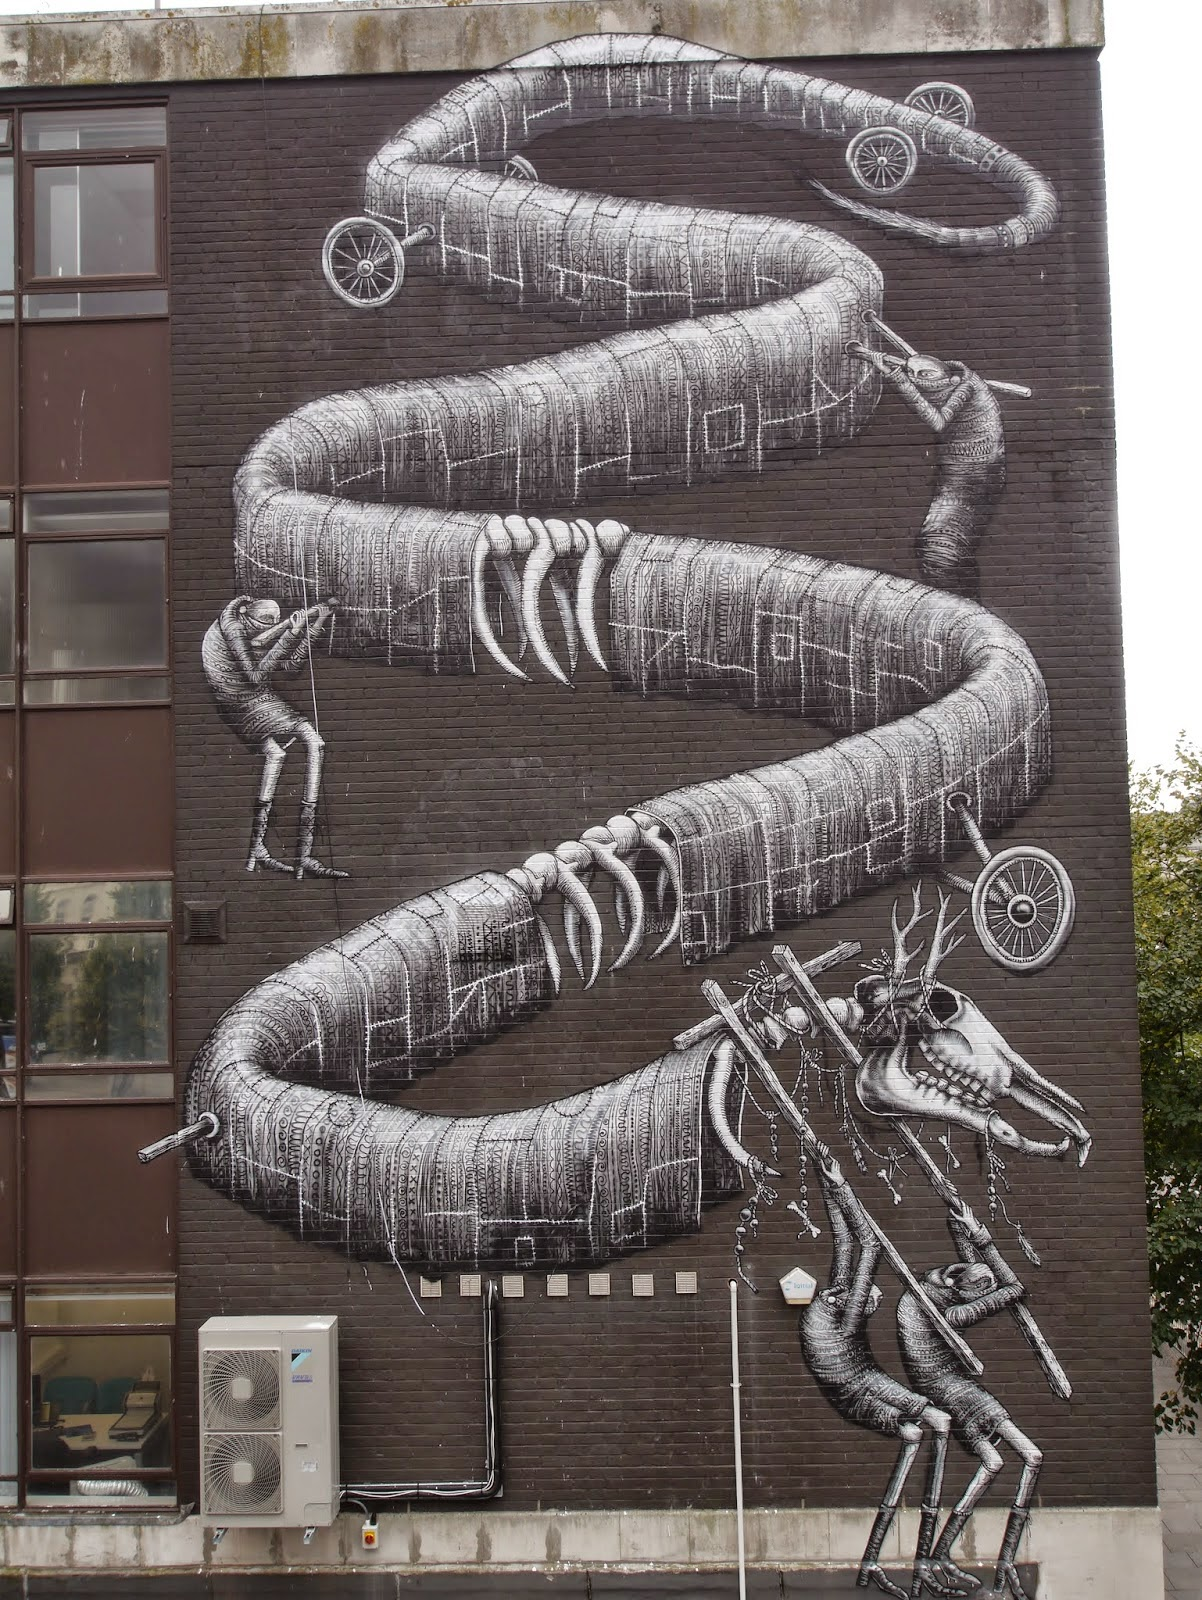 Phlegm is currently in South Wales where he just wrapped up this massive mural somewhere on the streets of Cardiff.